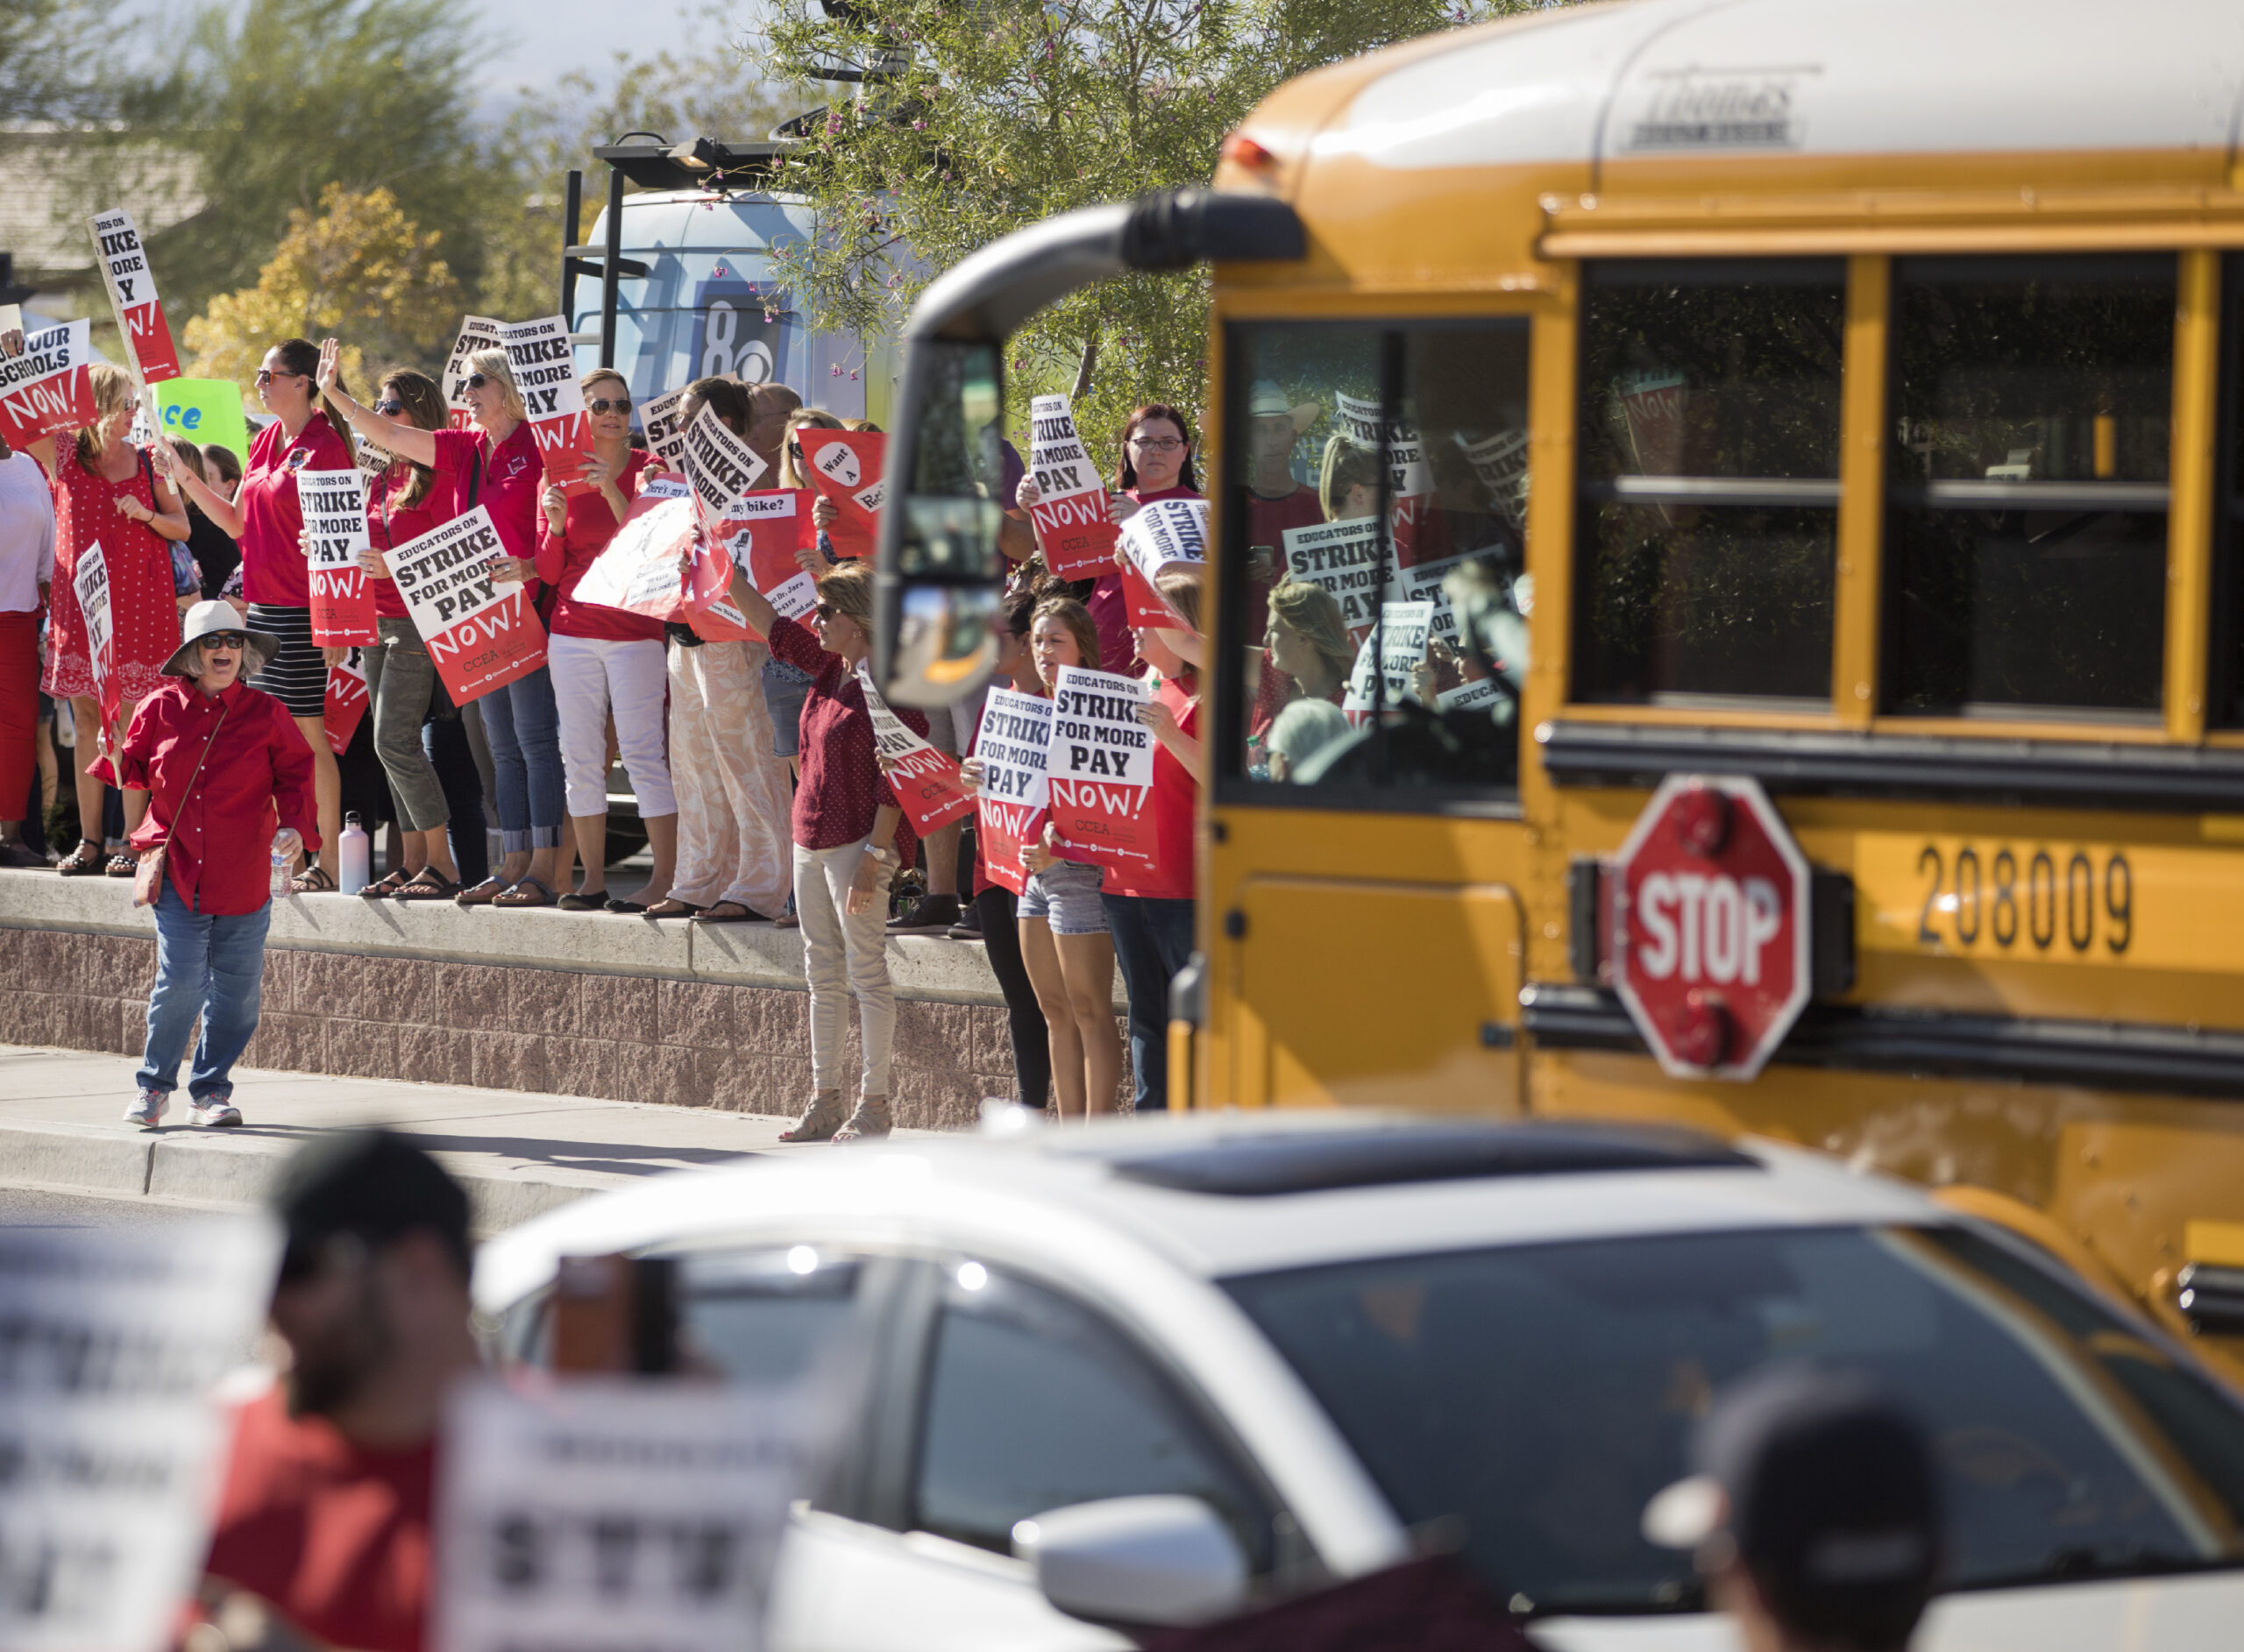 A school bus parked in front of a group of teachers wearing red shirts during a rally